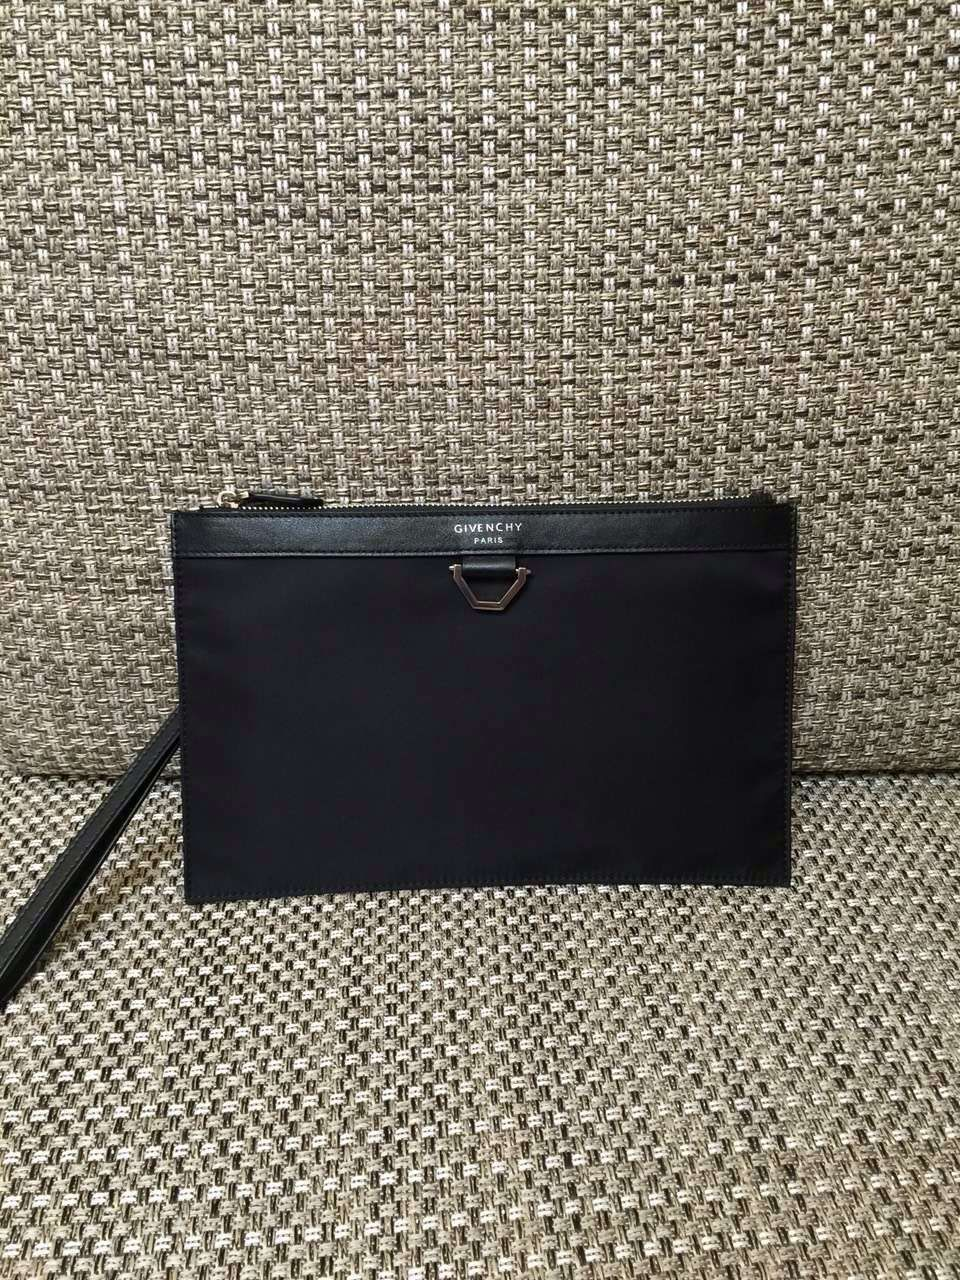 7ec16d2b724 S S 2016 Givenchy Small Leather Goods Collection Outlet- Givenchy Zip Pouch  Clutch in Black Fabric and Calfskin Leather